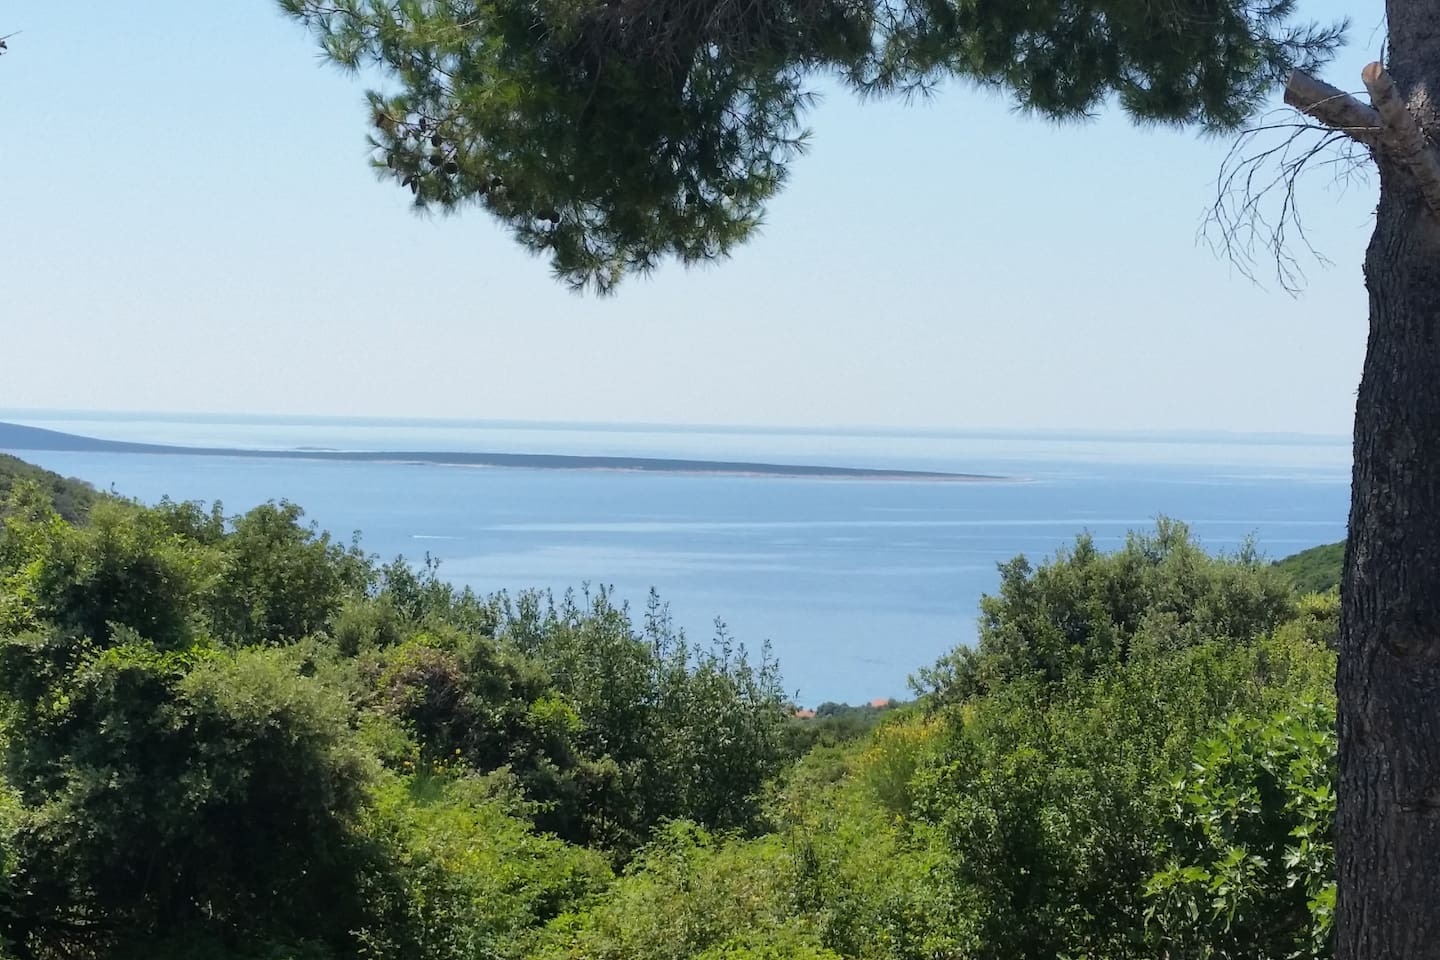 A view from our house towards Marascica bay